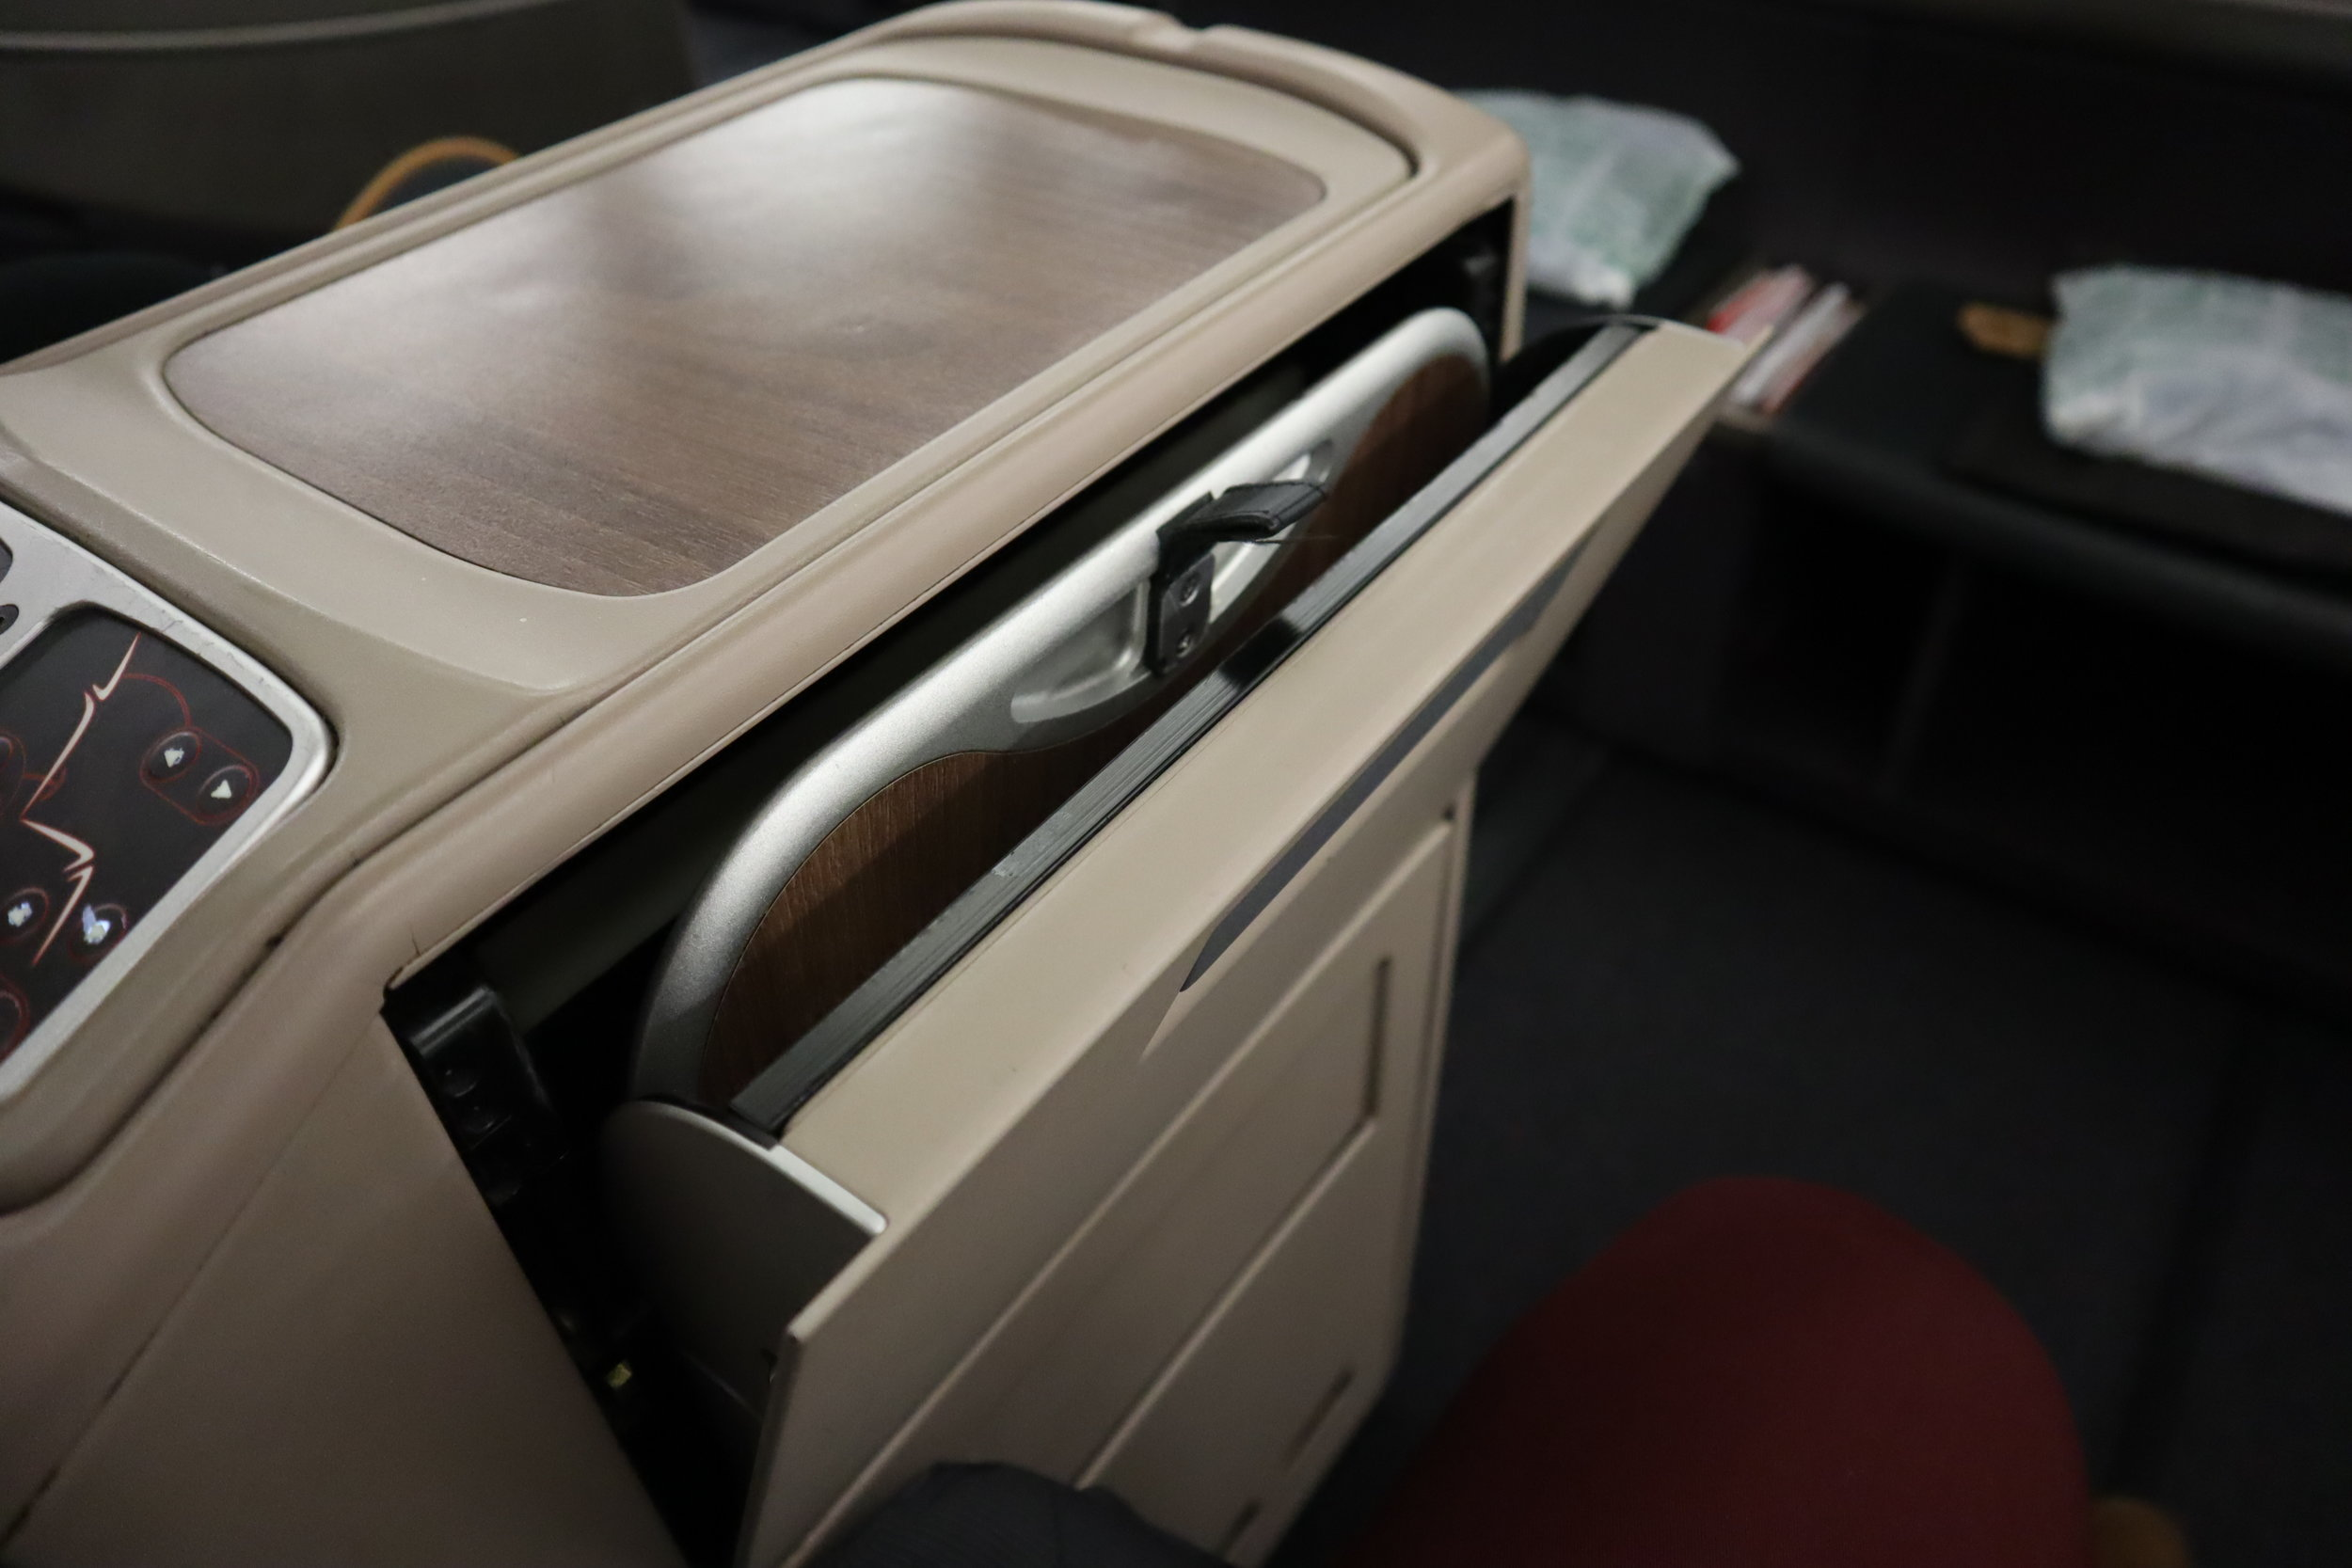 Turkish Airlines A330 business class – Tray table